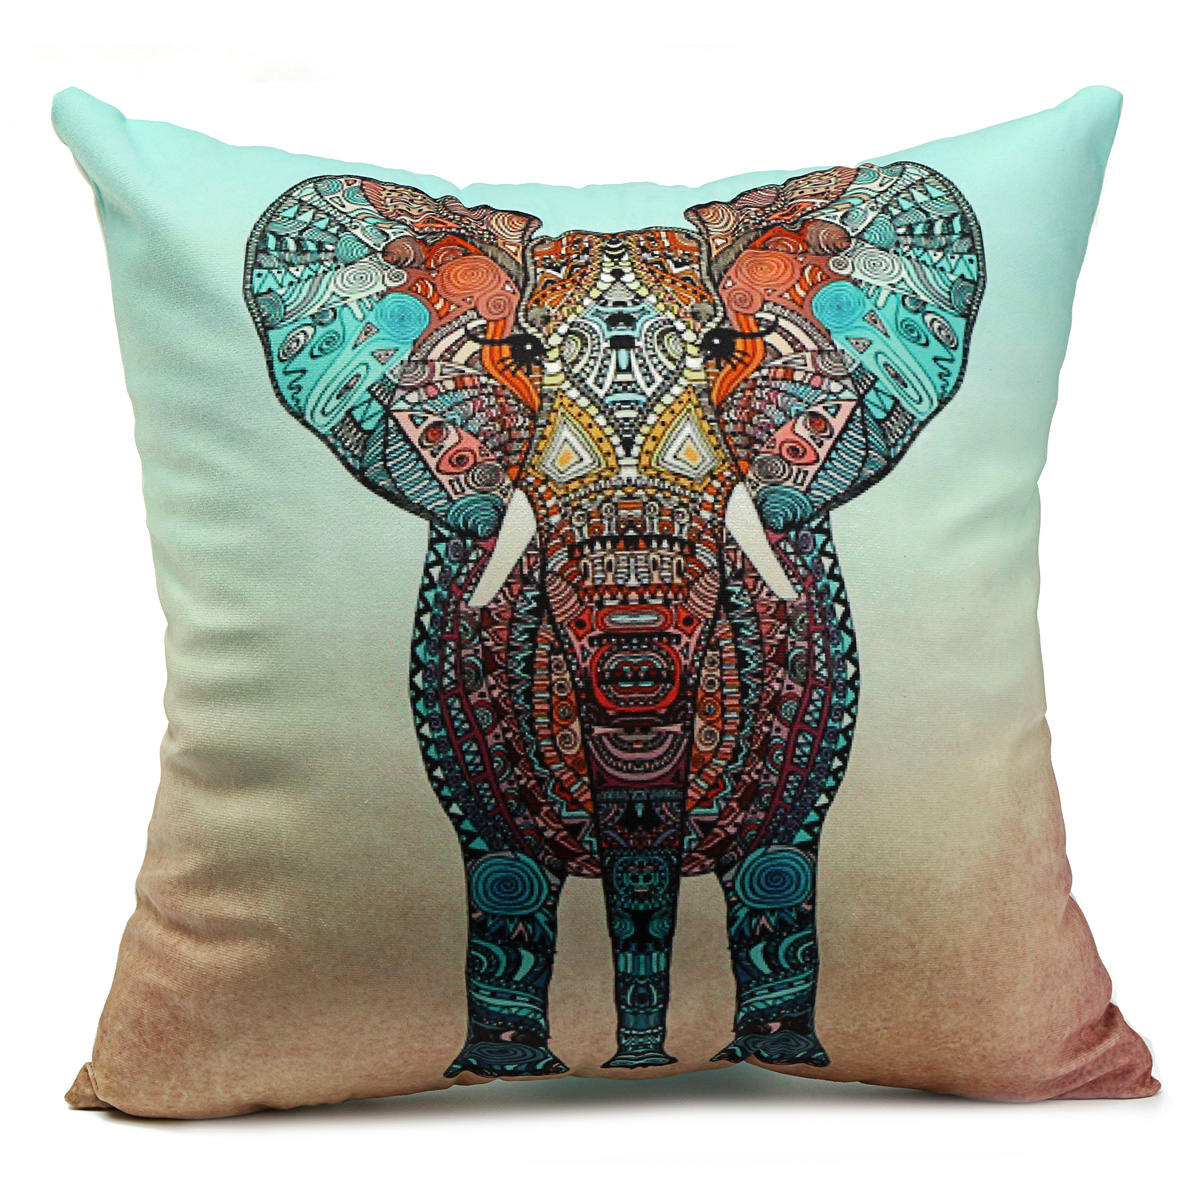 Velvet colorful elephant throw pillow case cushion cover car home sofa decor ebay Colorful elephant home decor